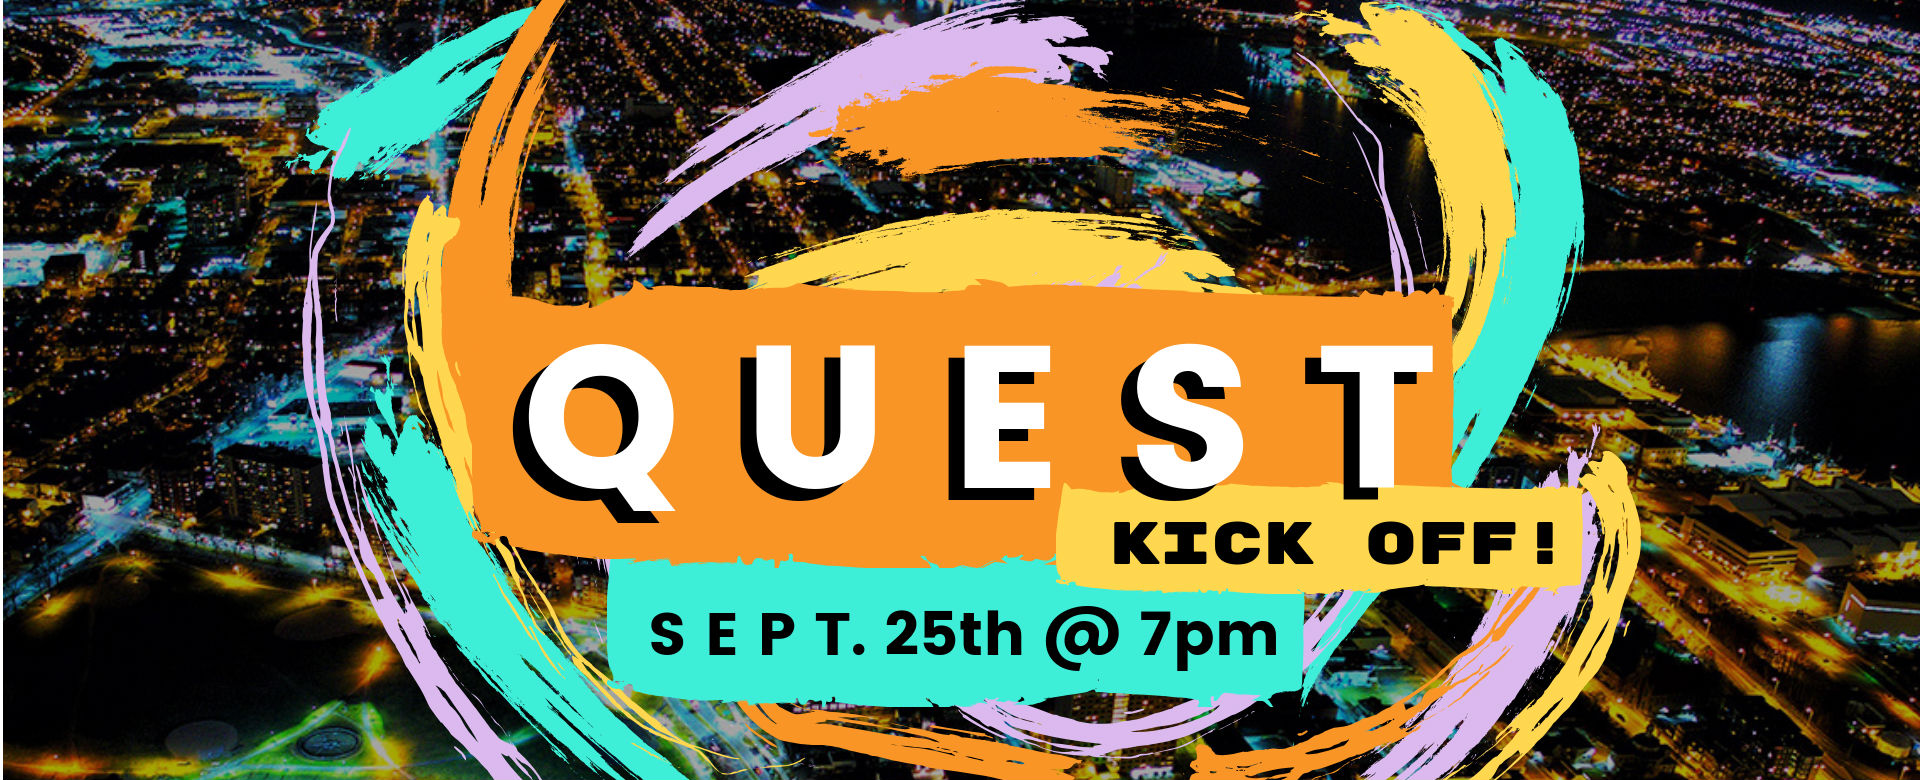 Quest starts up again on September 25